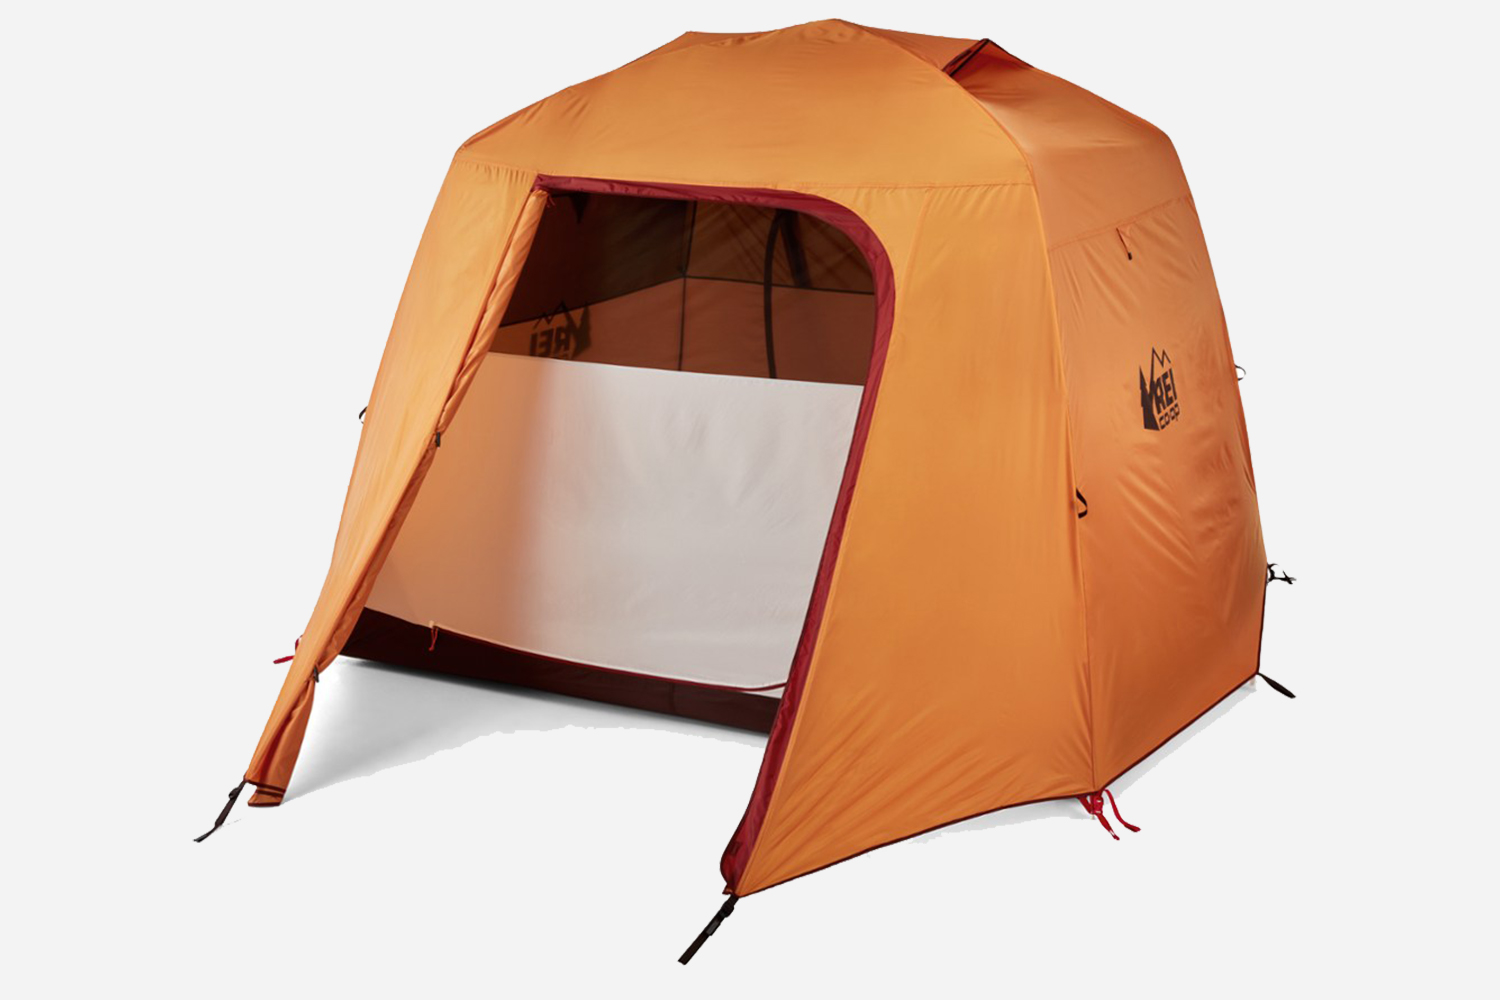 REI Grand Hut 4 Tent 4th of July Sale